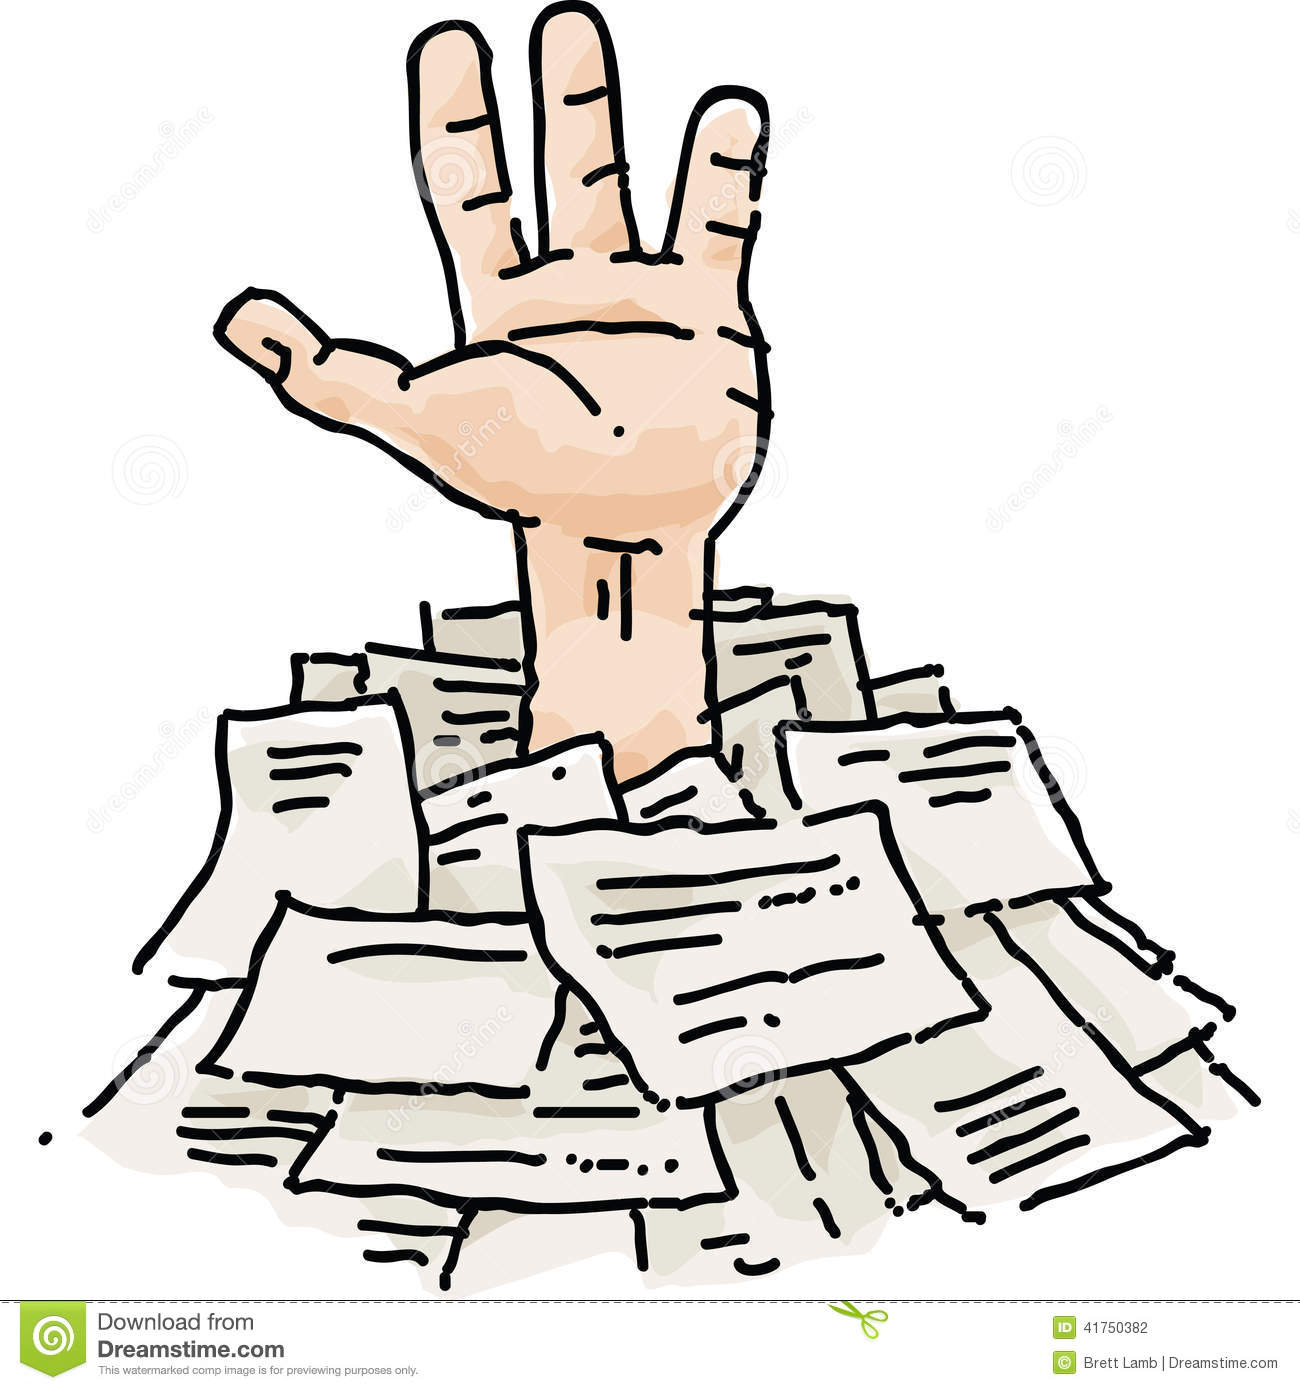 buried in paperwork stock illustration. illustration of reaching